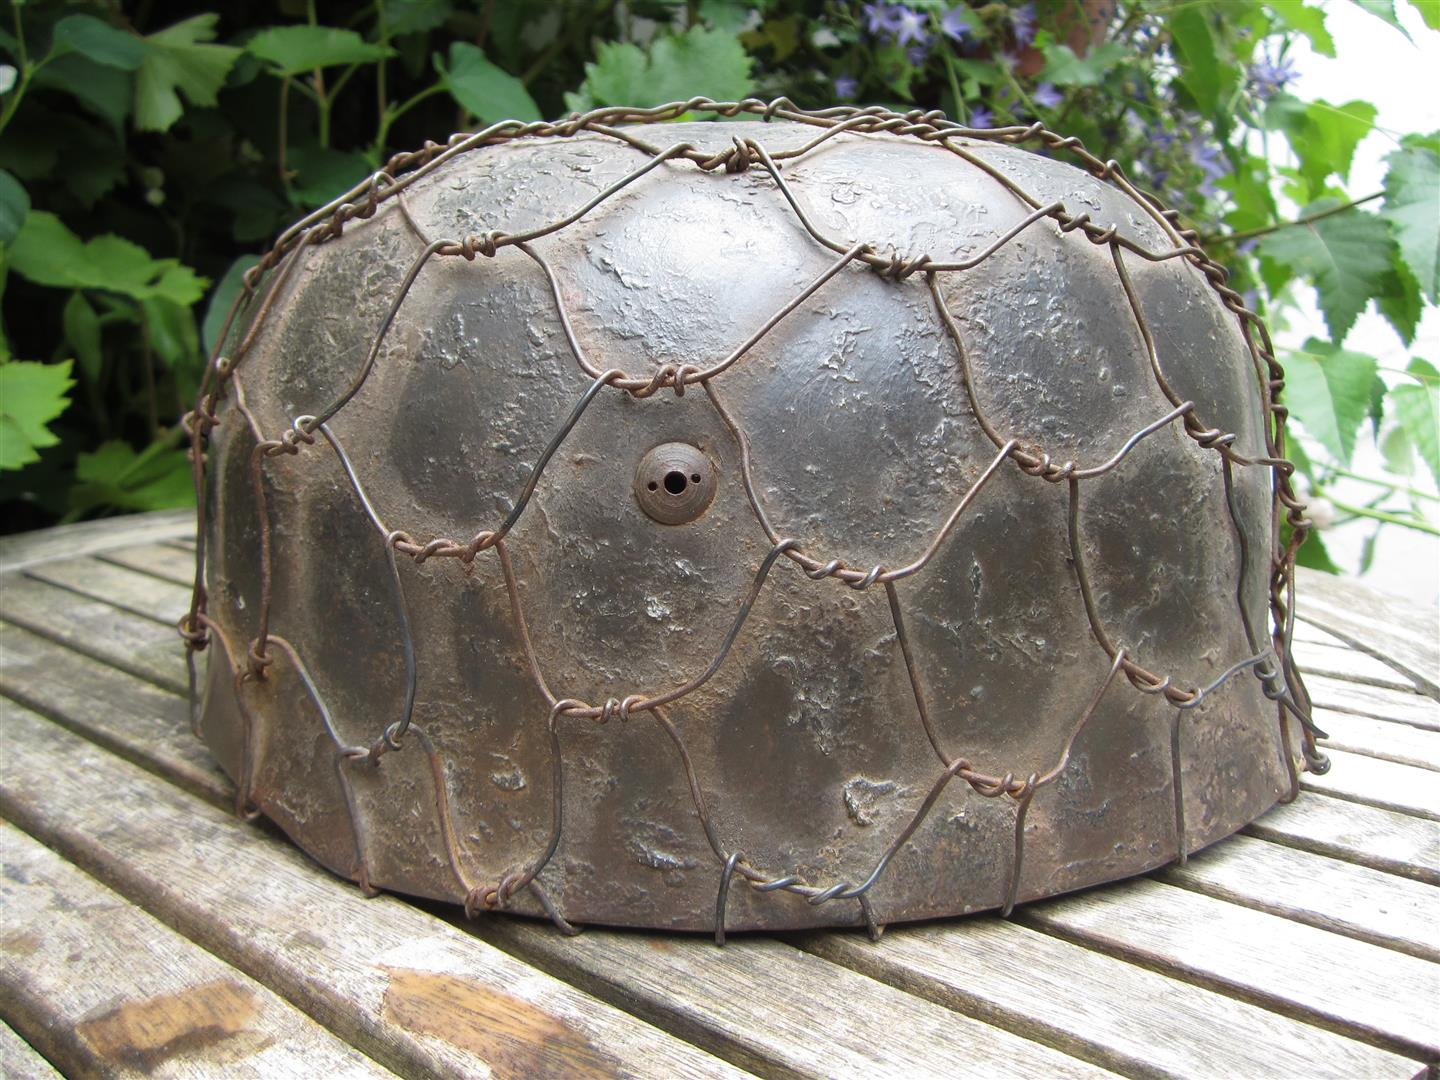 WW2 Falschirmjager Helmet, Camoflaged - Reproduction